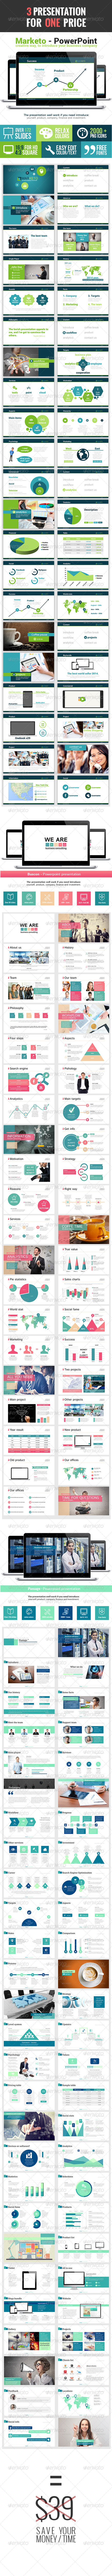 GraphicRiver 3 in 1 Powerpoint Bundle V2.0 8240700